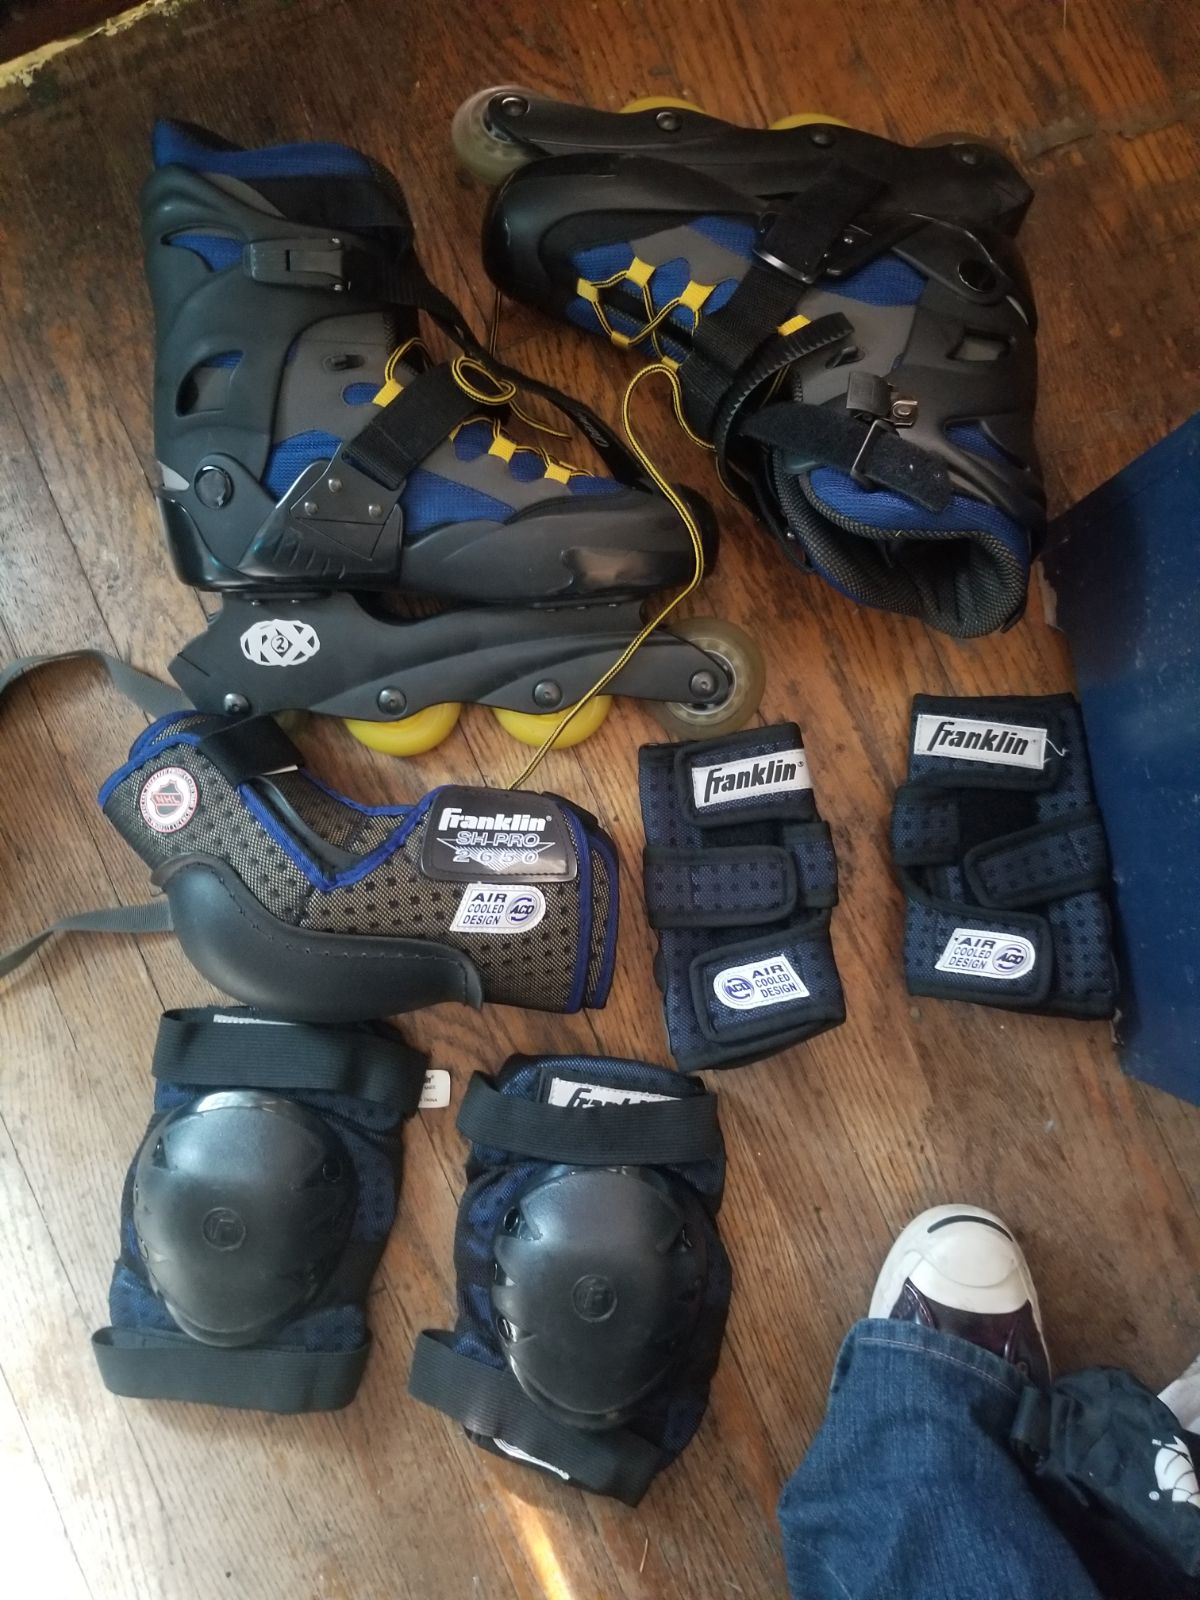 Franklin roller blades with 5 pads in ba